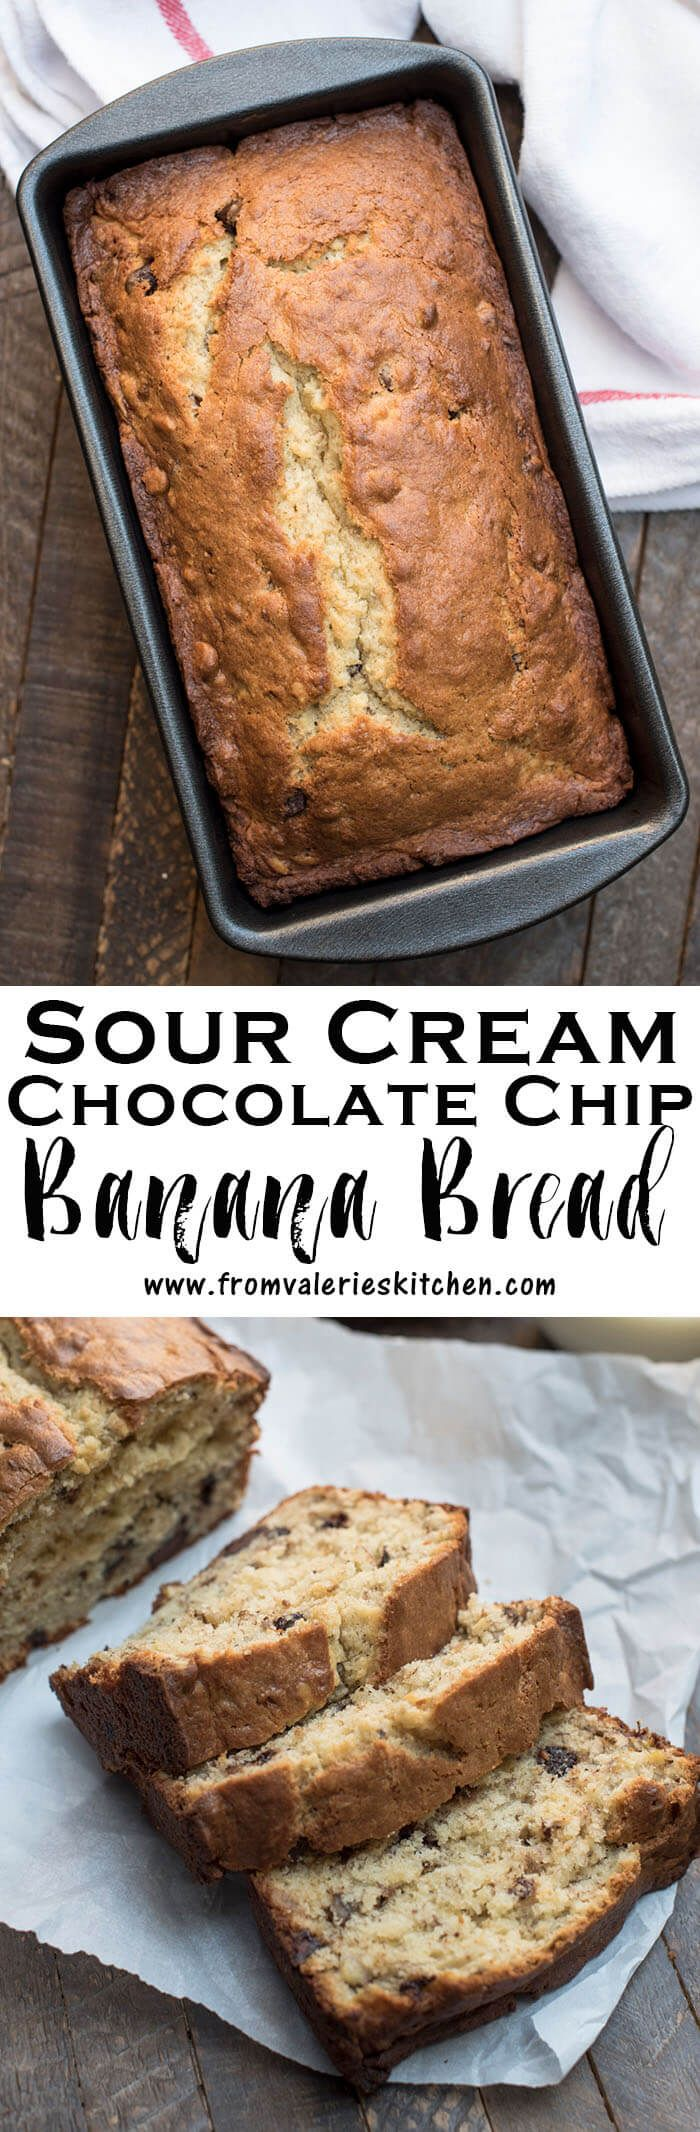 Sour Cream Chocolate Chip Banana Bread Chocolate Chip Banana Bread Banana Recipes Banana Chocolate Chip